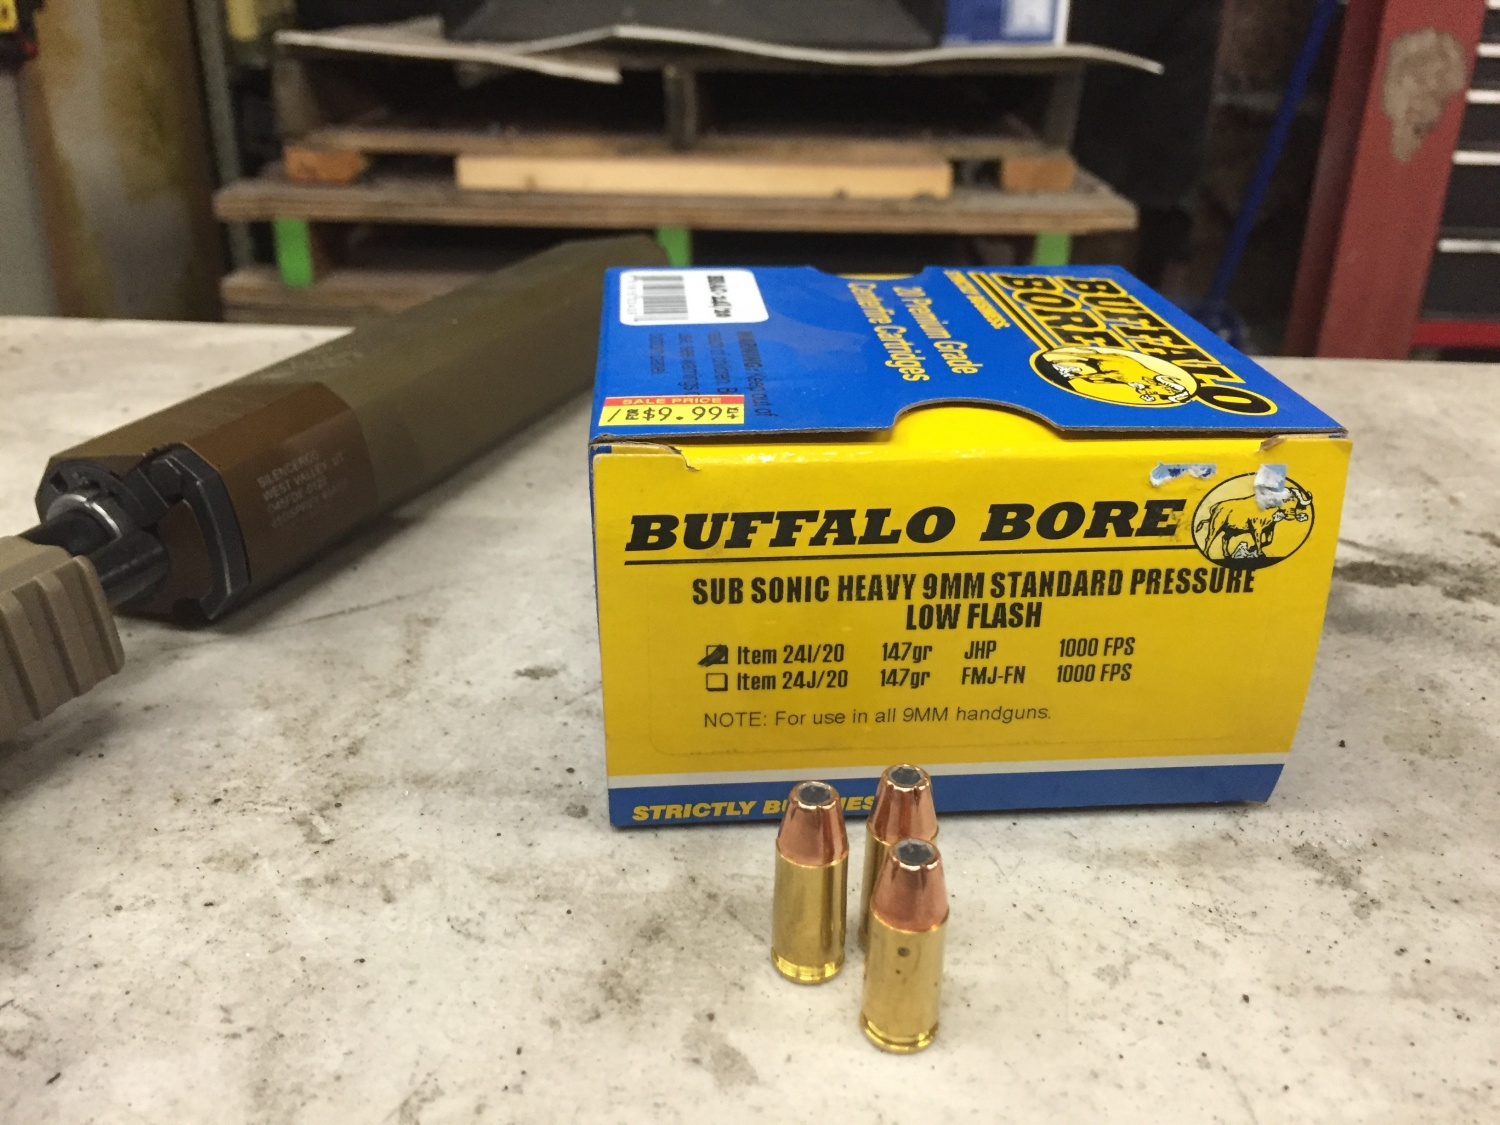 The Buffalo Bore sub sonic ammo I ran.